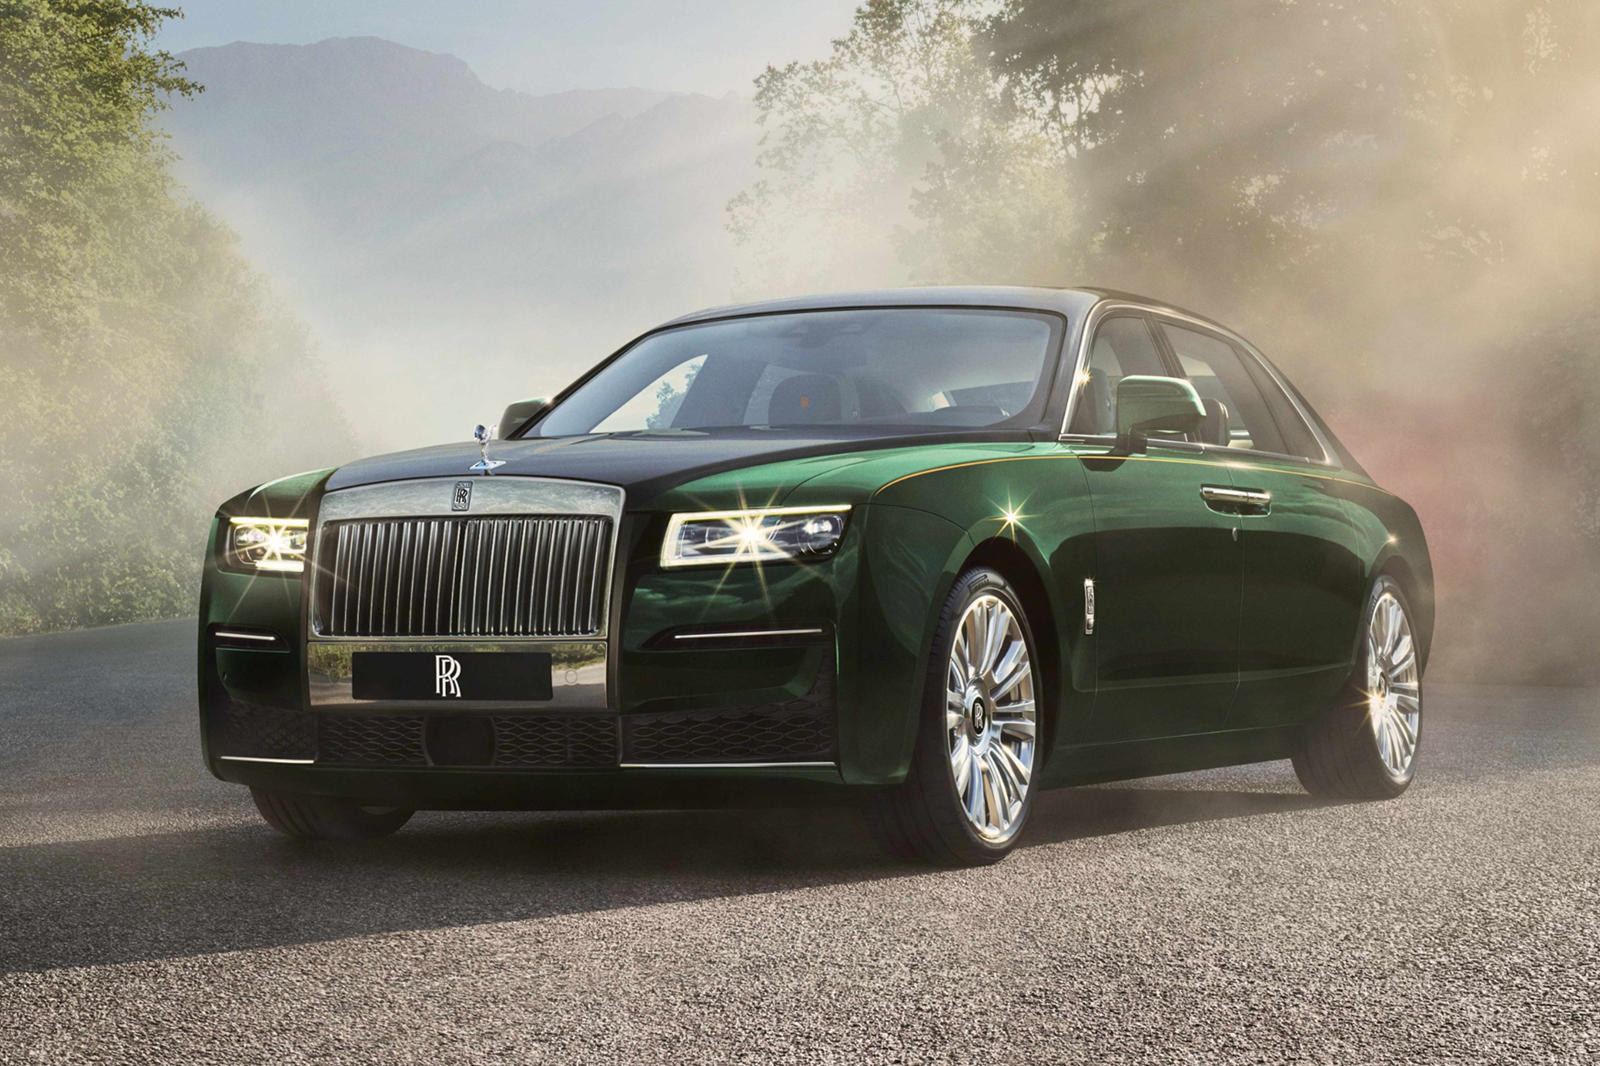 2021 Rolls Royce Ghost Extended Revealed With Ultra Luxury Interior Carbuzz